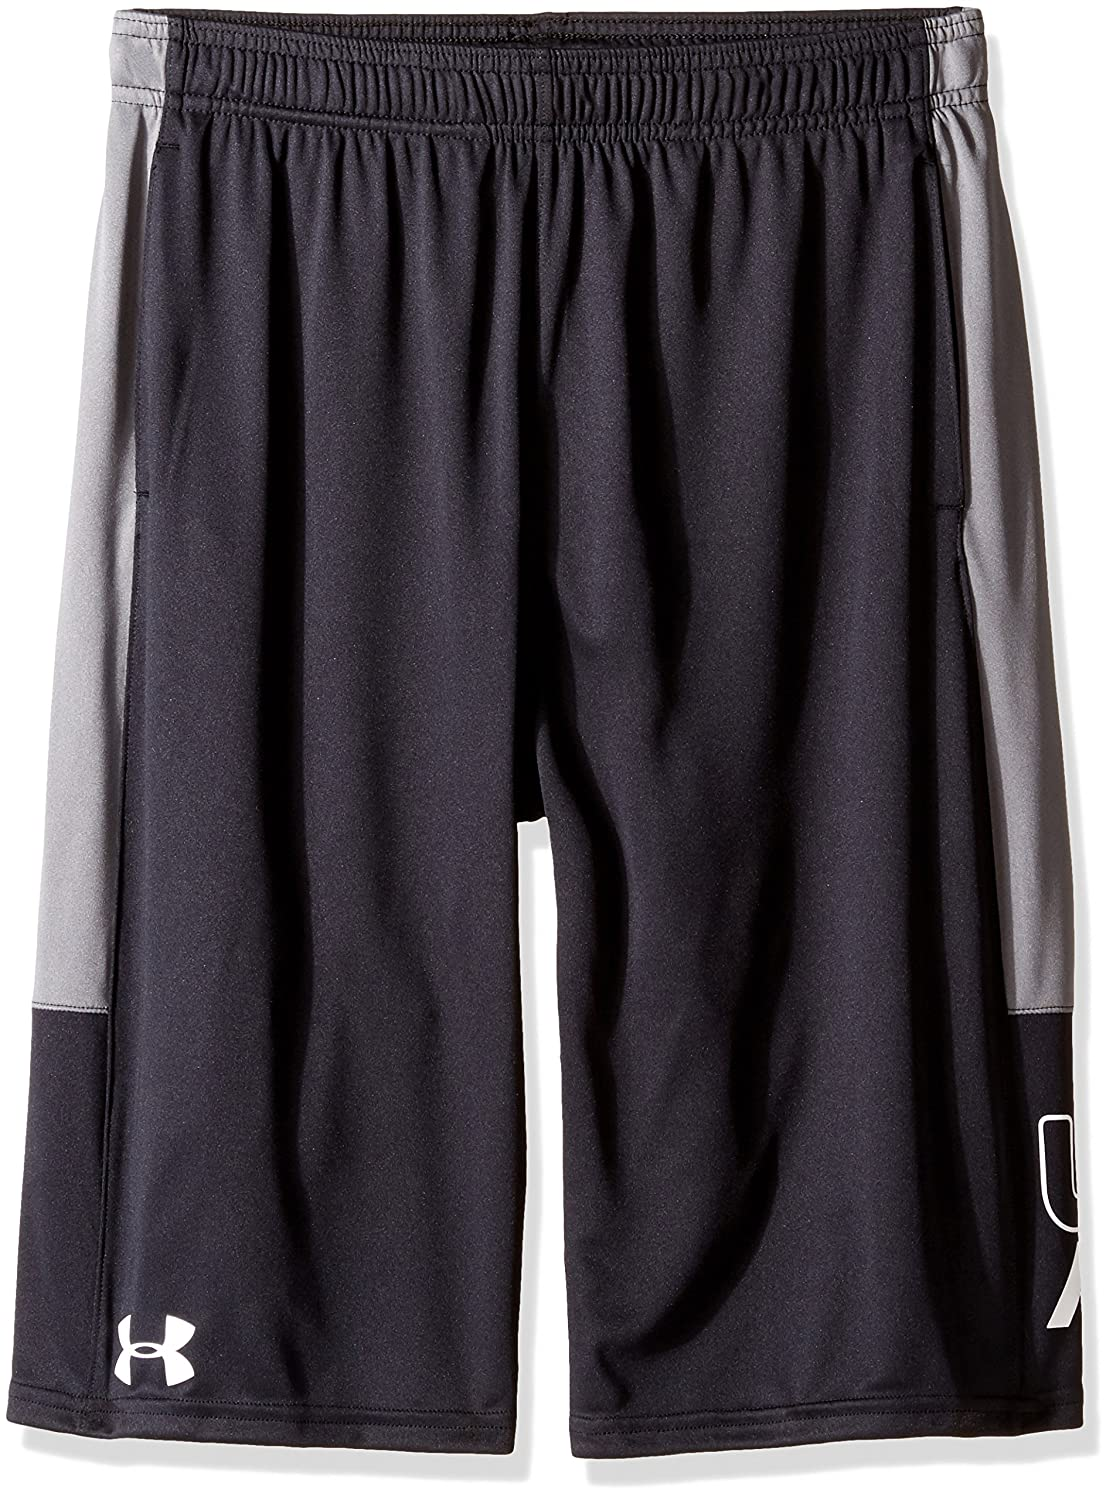 Under Armour Boys Instinct Shorts Under Armour Apparel 1299989